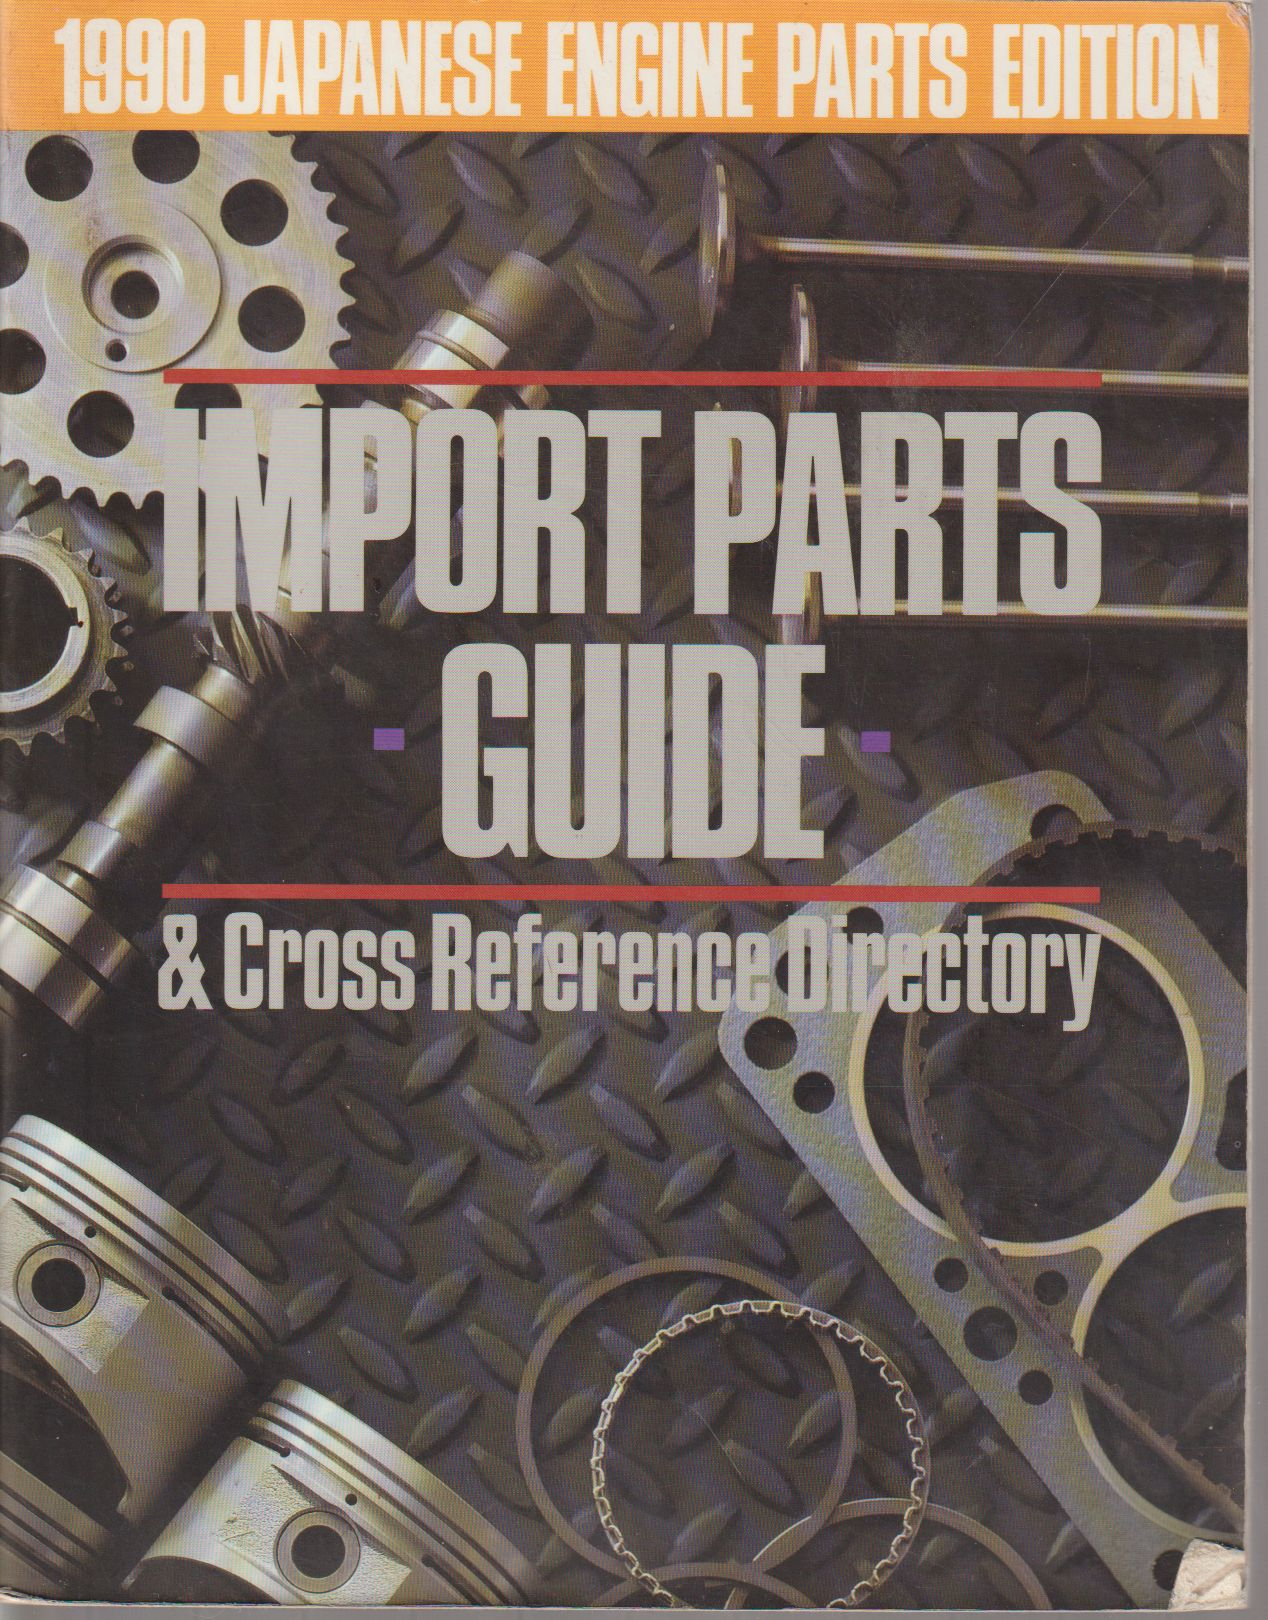 Imported Parts Guide & Cross Reference Directory; 1990 Japanese